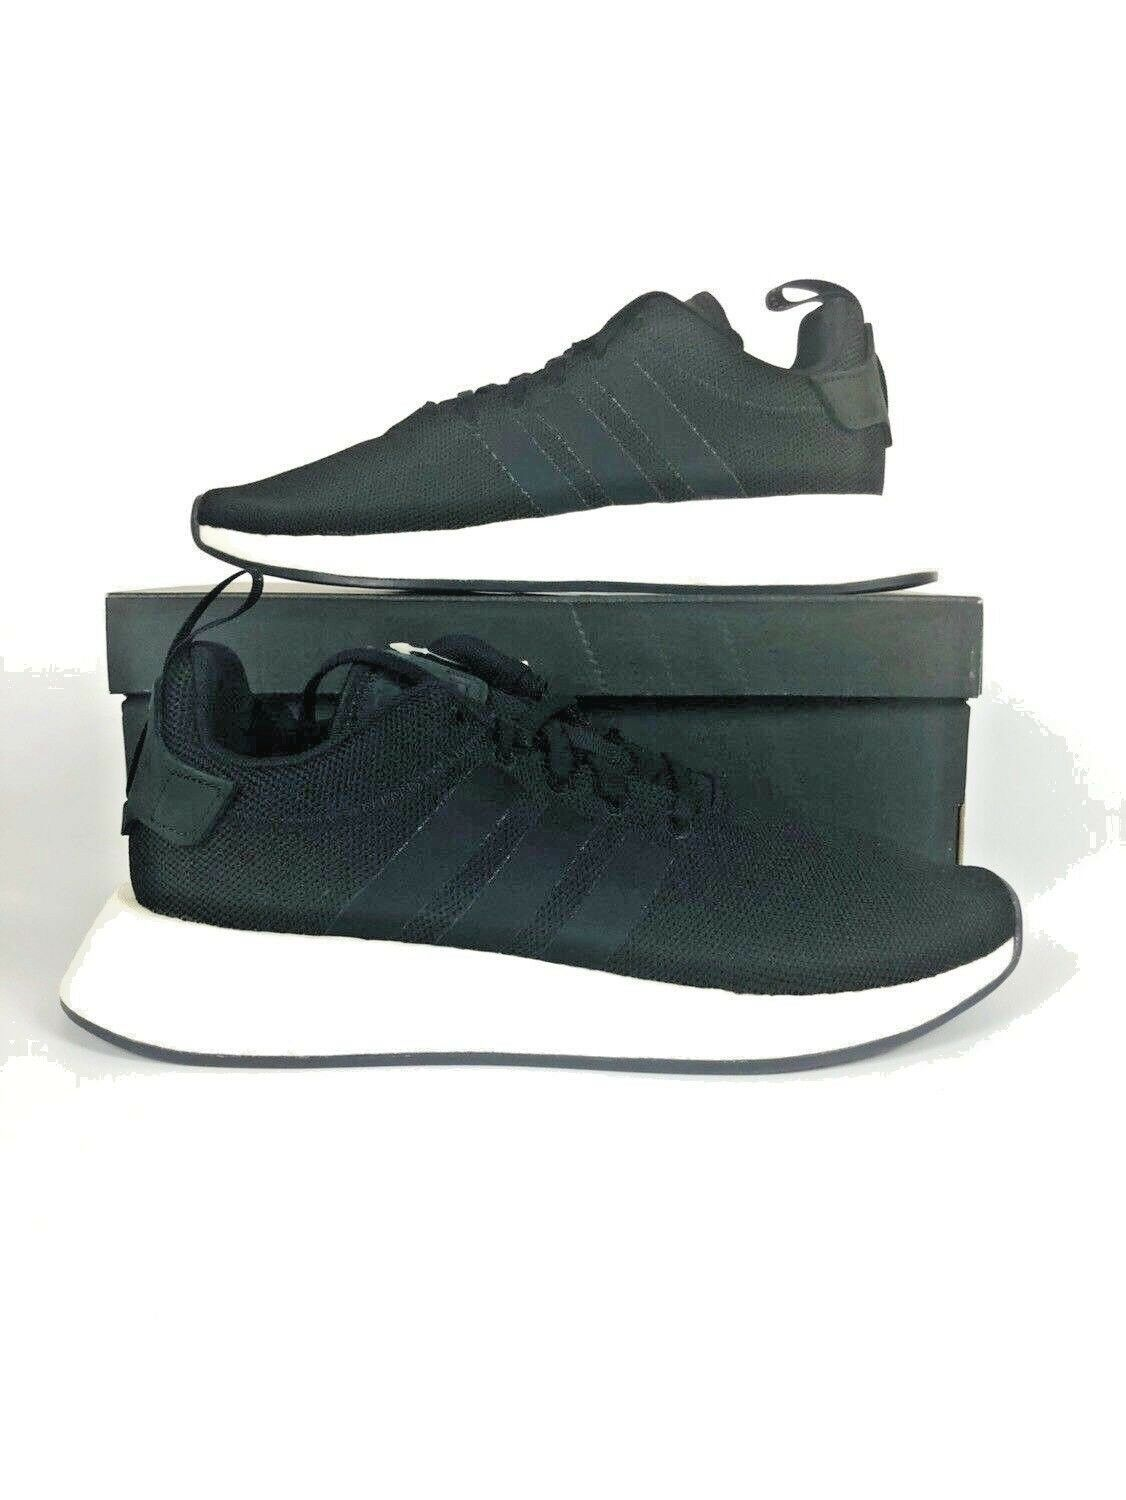 MEN'S SHOES SNEAKERS ADIDAS ORIGINALS NMD_R2 PRIMEKNIT [CQ2402]